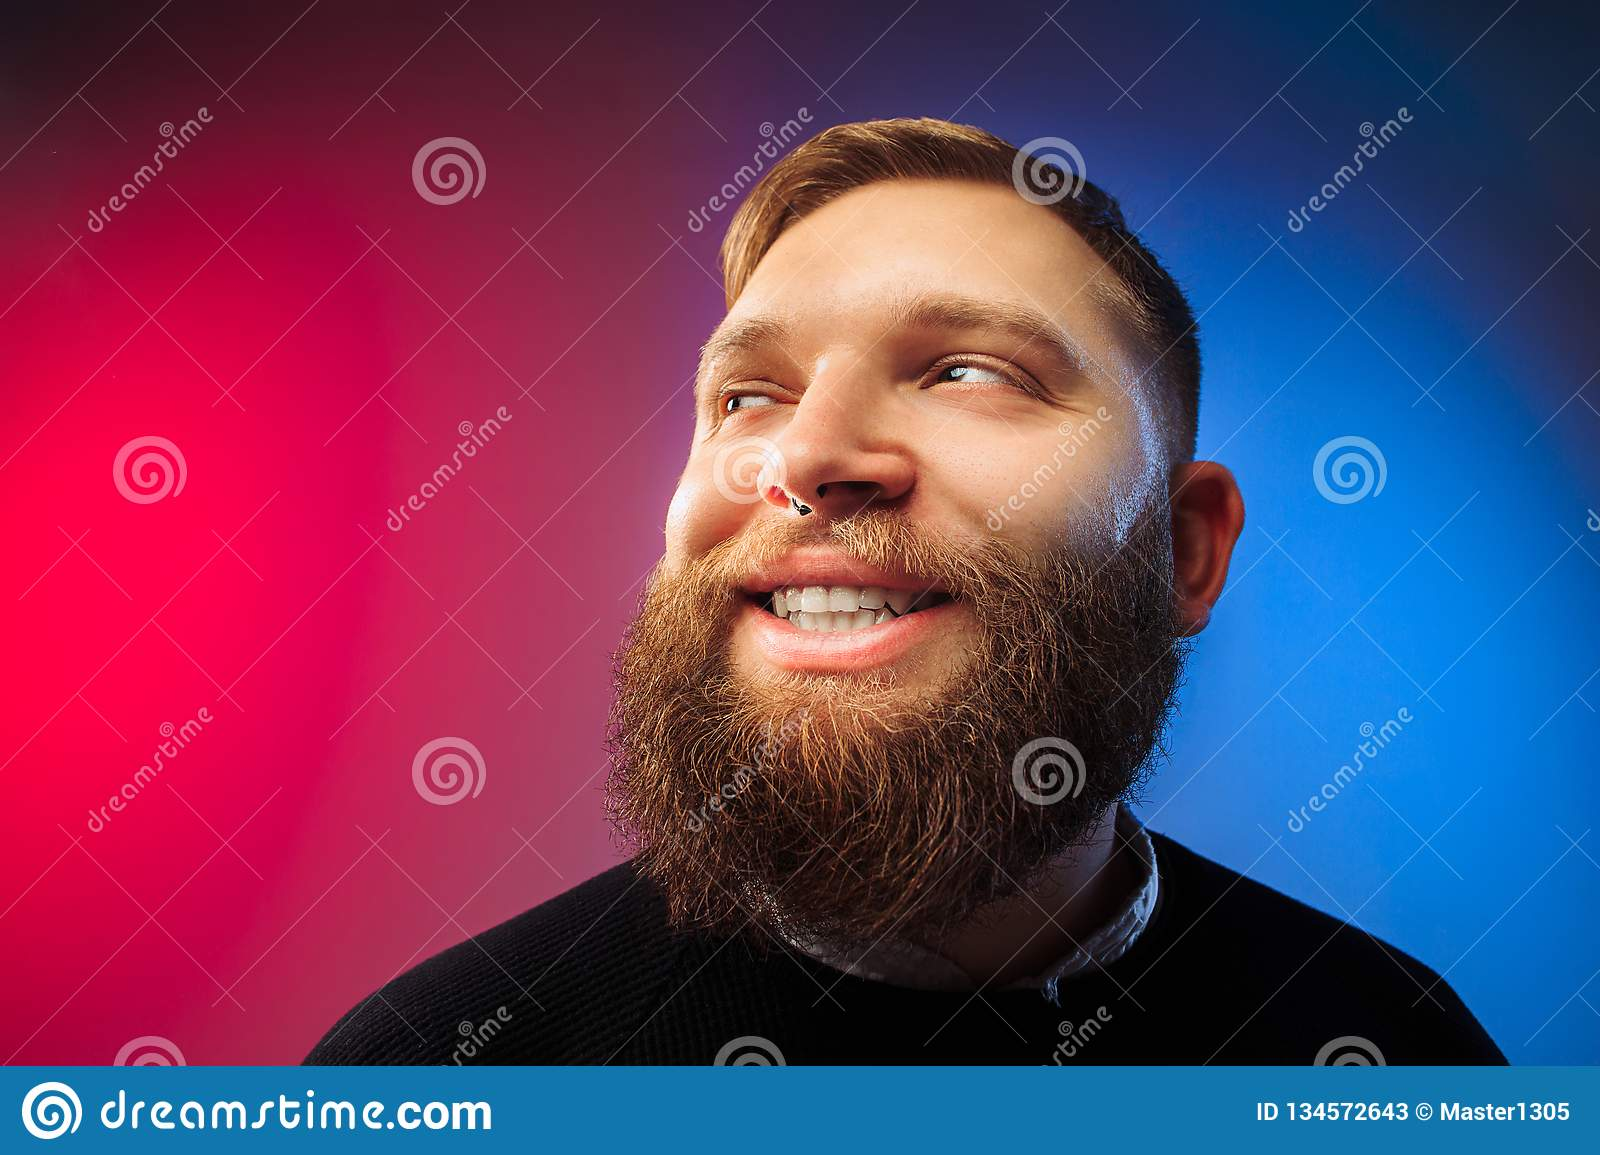 The happy man standing and smiling against pink background.